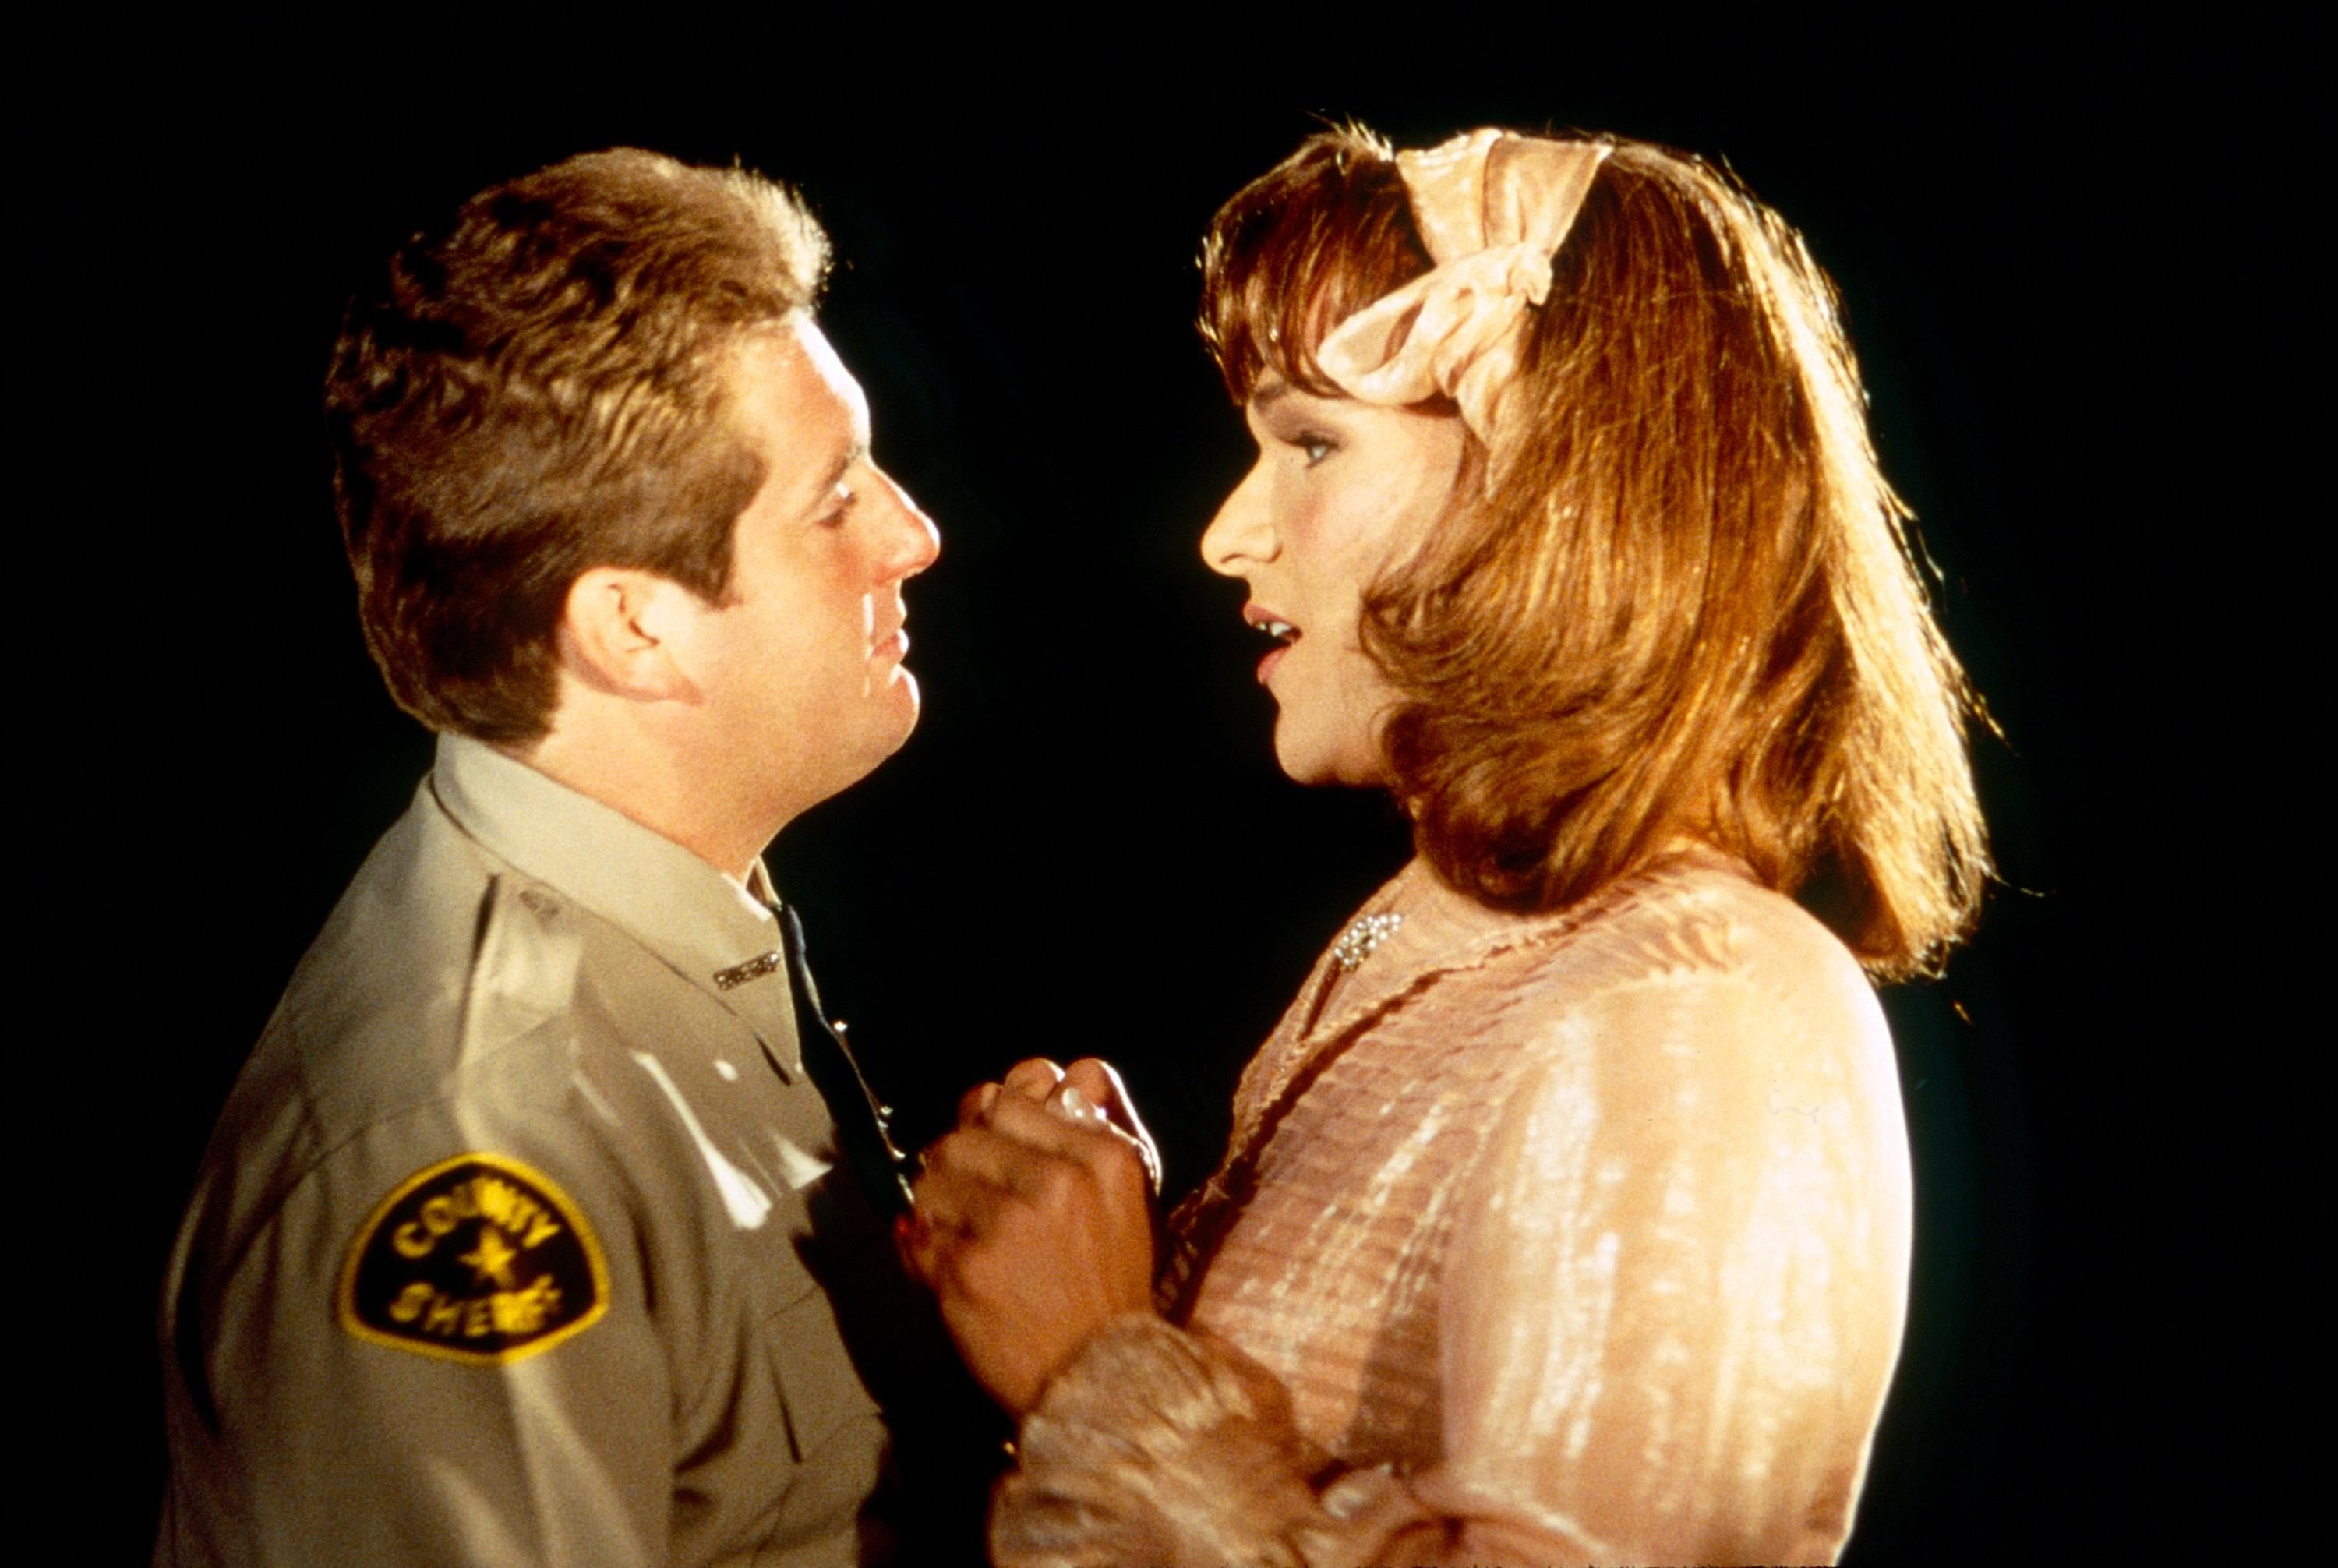 Chris Penn as the bigoted Sheriff Dollard and Swayze as Vida in 'To Wong Foo' (Photo: ©Universal/Courtesy Everett Collection)